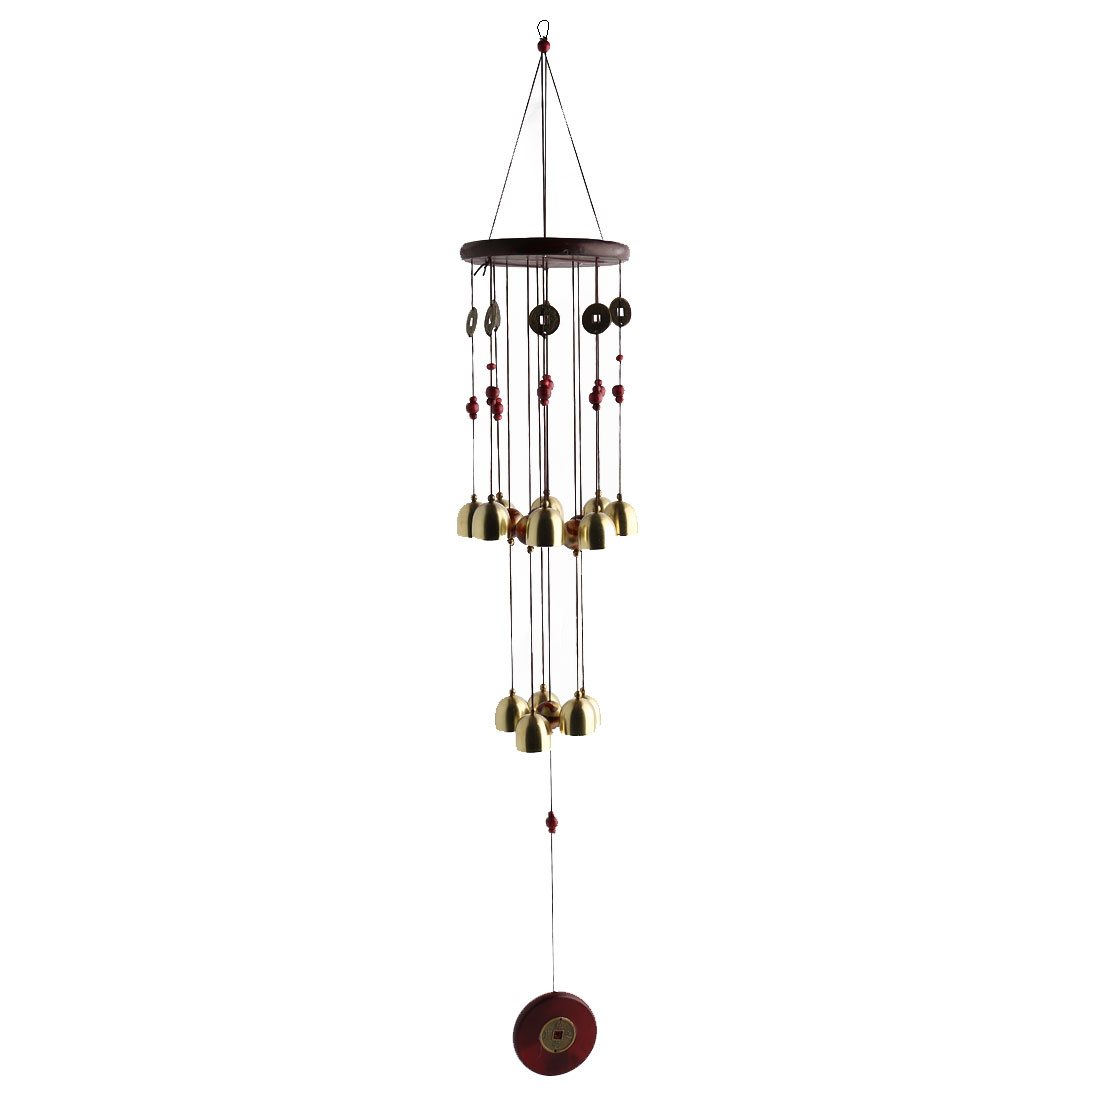 Home Chinese Style Bells Beads Hanging Birthday Gift Wind Chime Bell Windbell